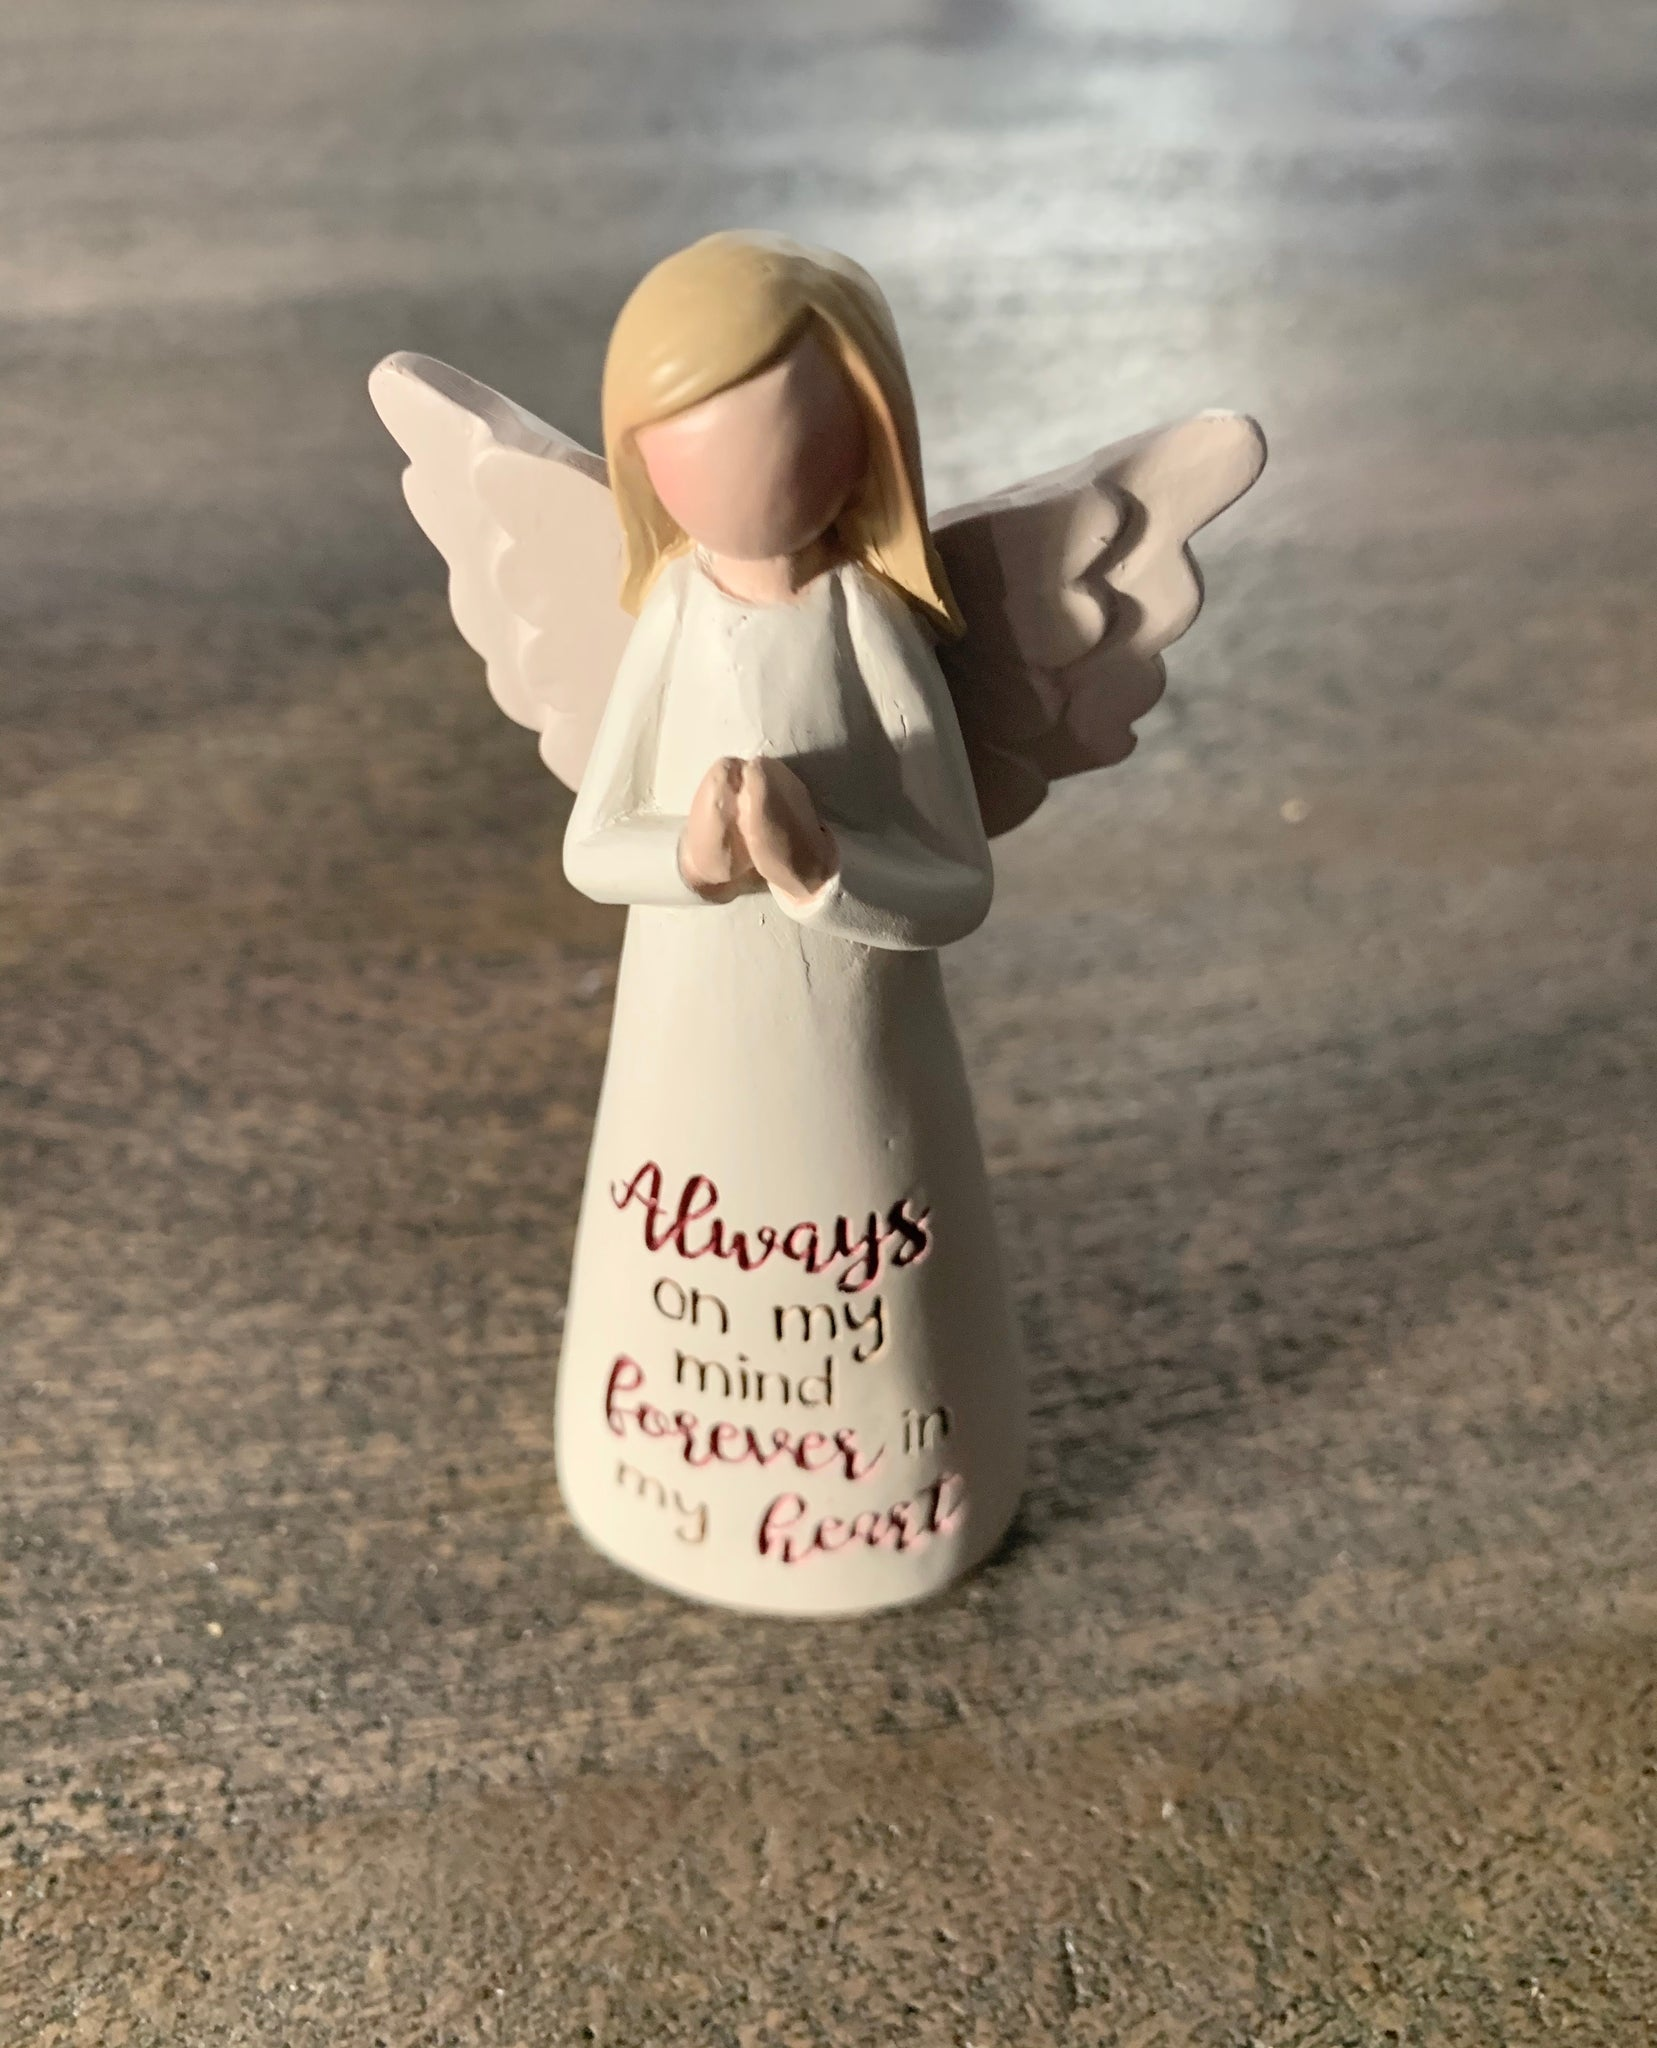 Angelic blessing always on my mind figurine